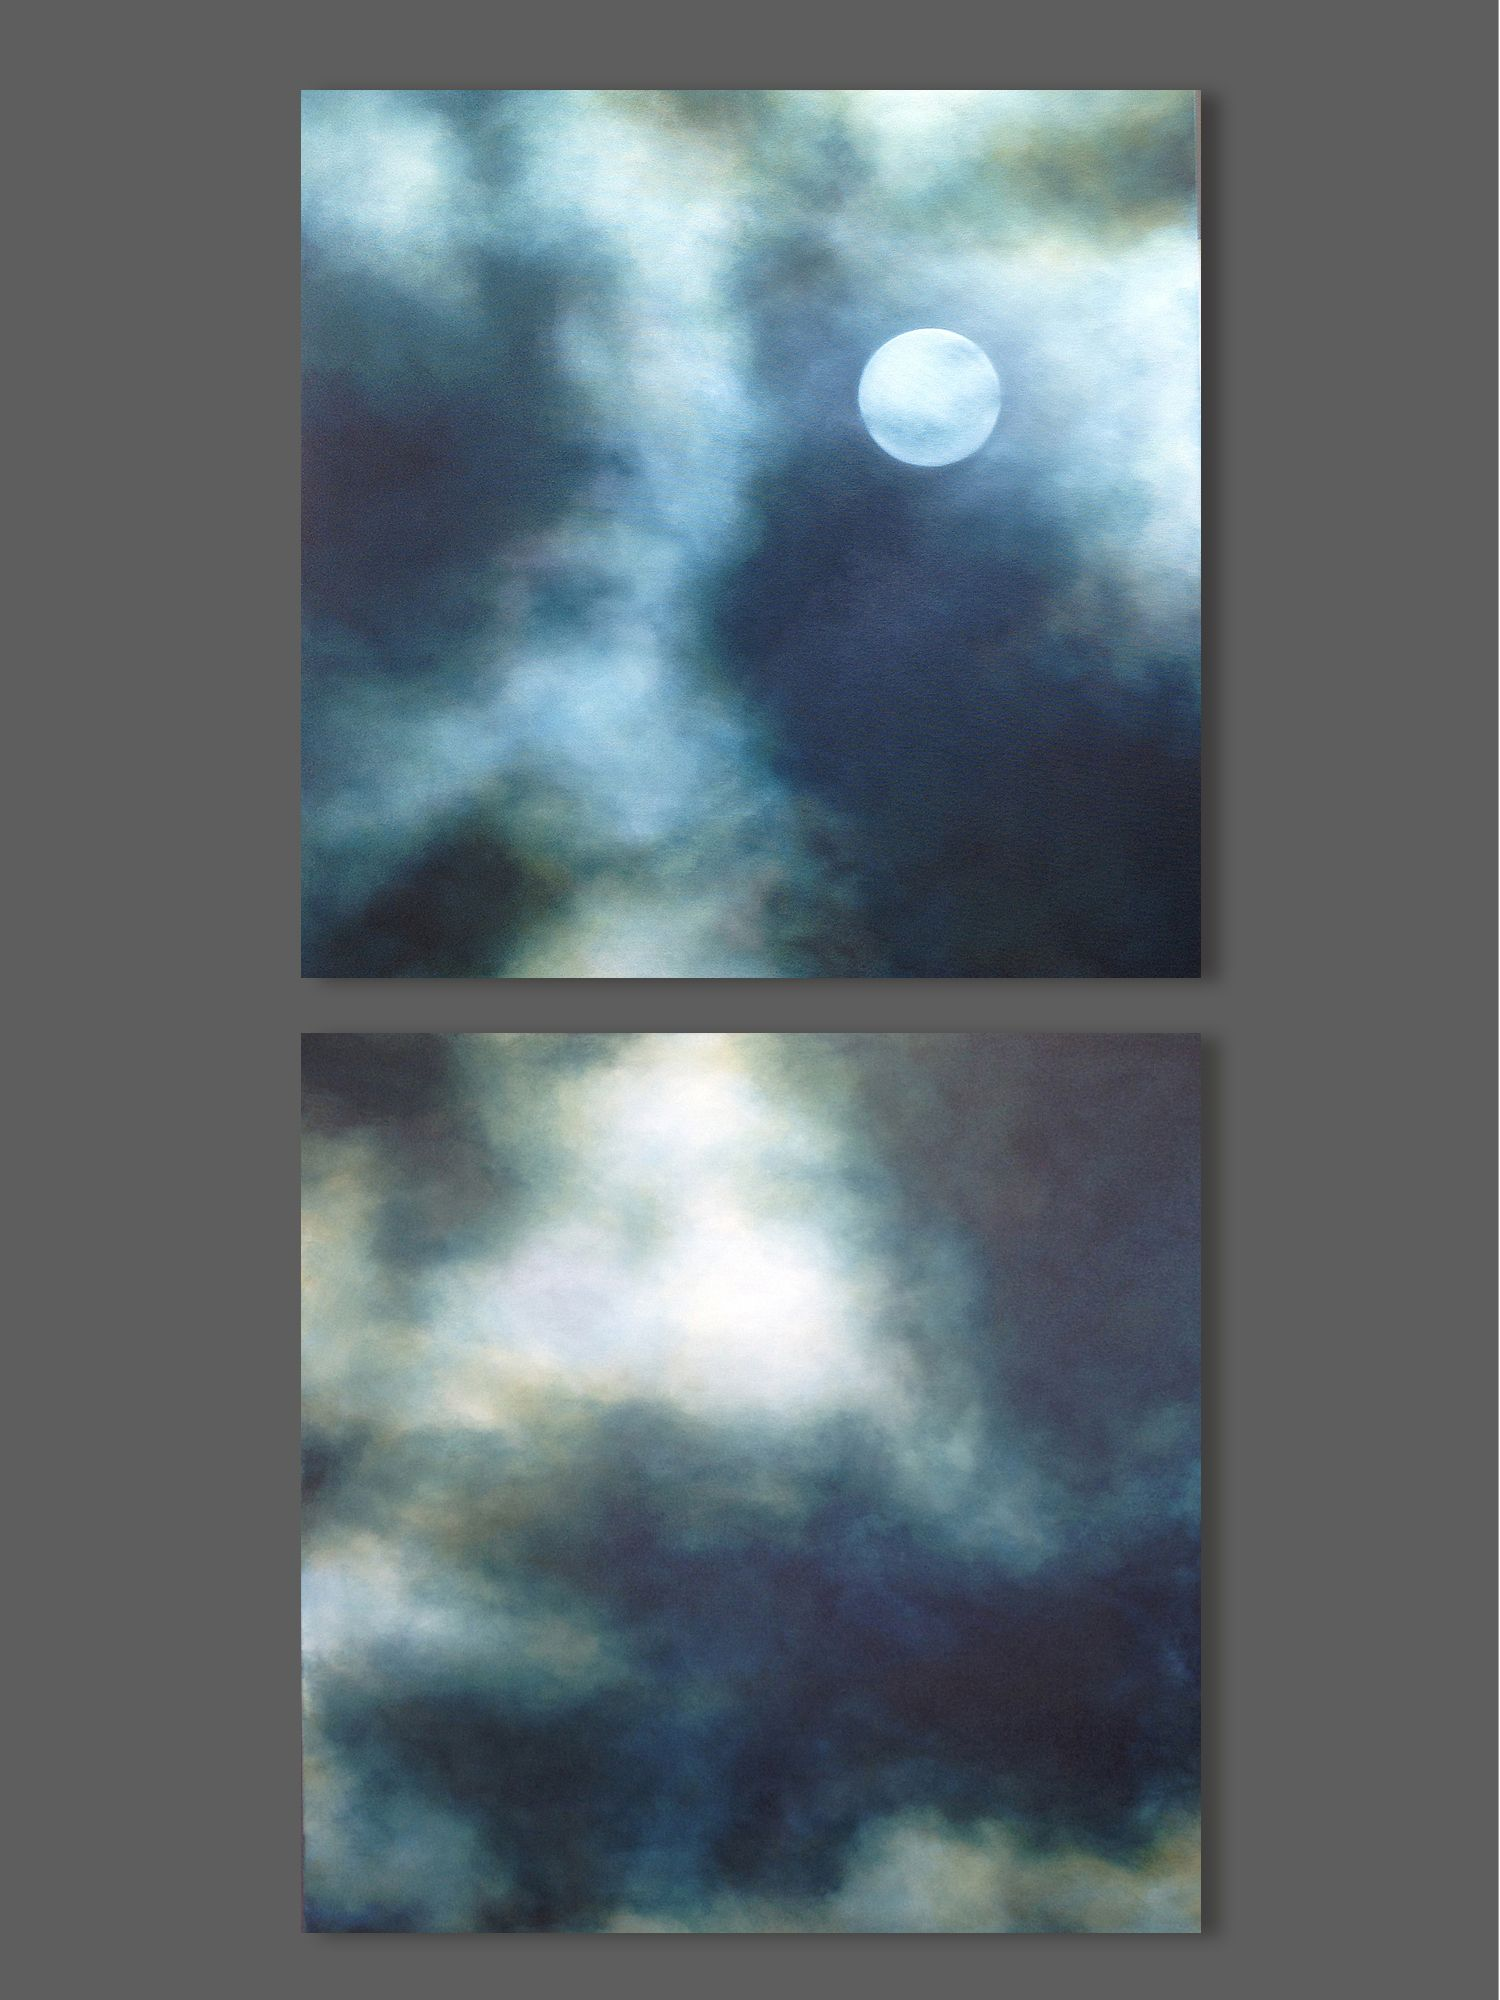 Framed Canvas Wall Art Modern Contemporary Seascape Oil Painting full moon night